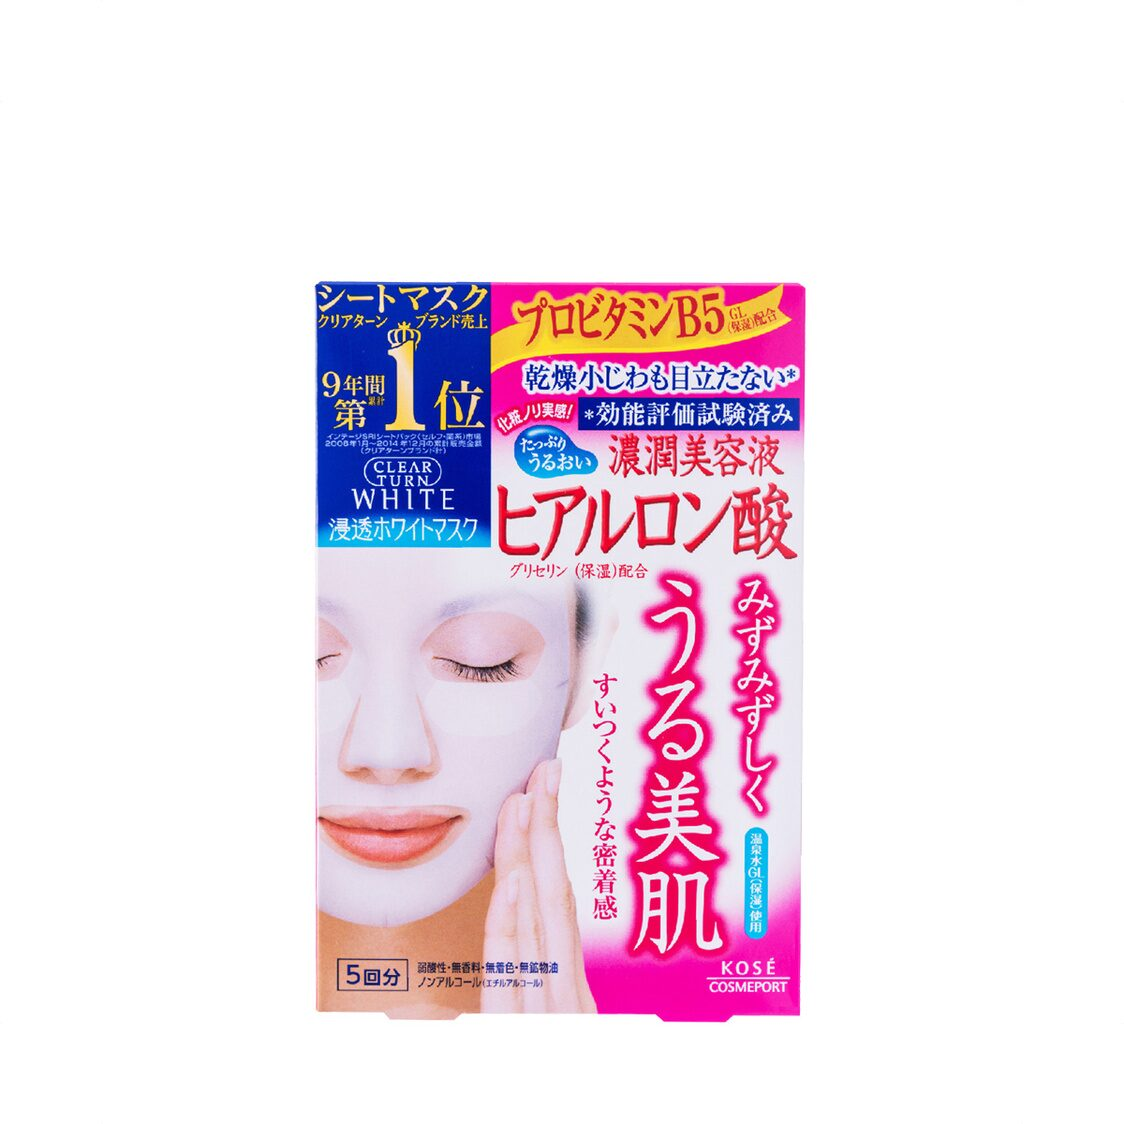 Clear TurnWhiteMask Hyaluronic Acid D